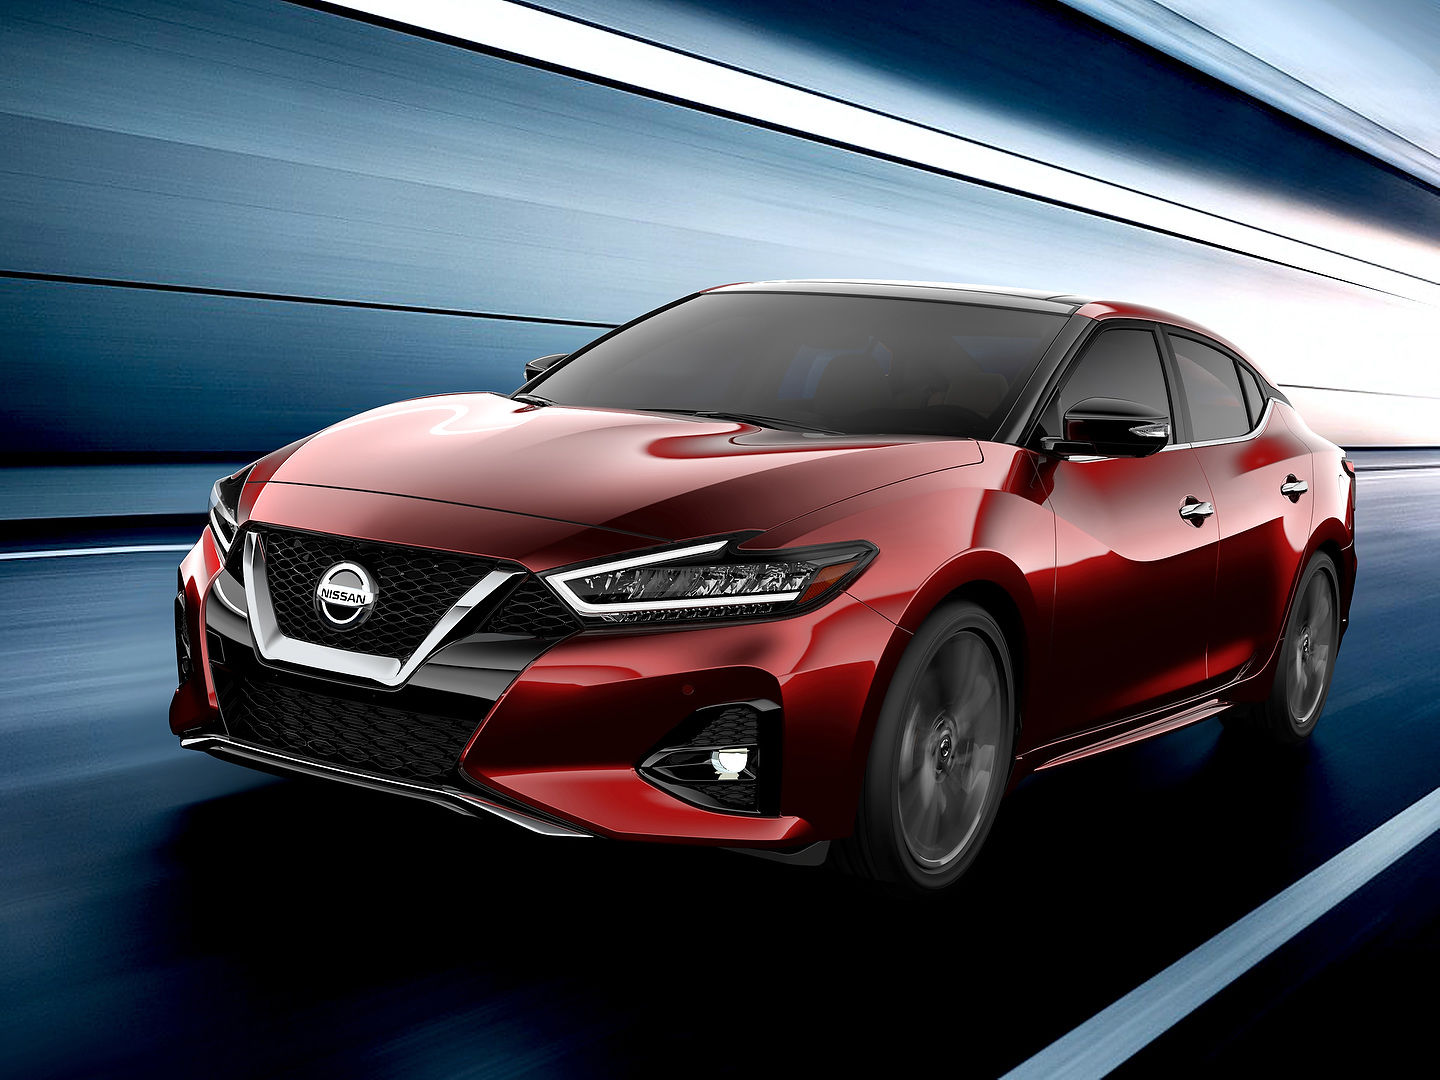 2019 Nissan Maxima will debut in Los Angeles